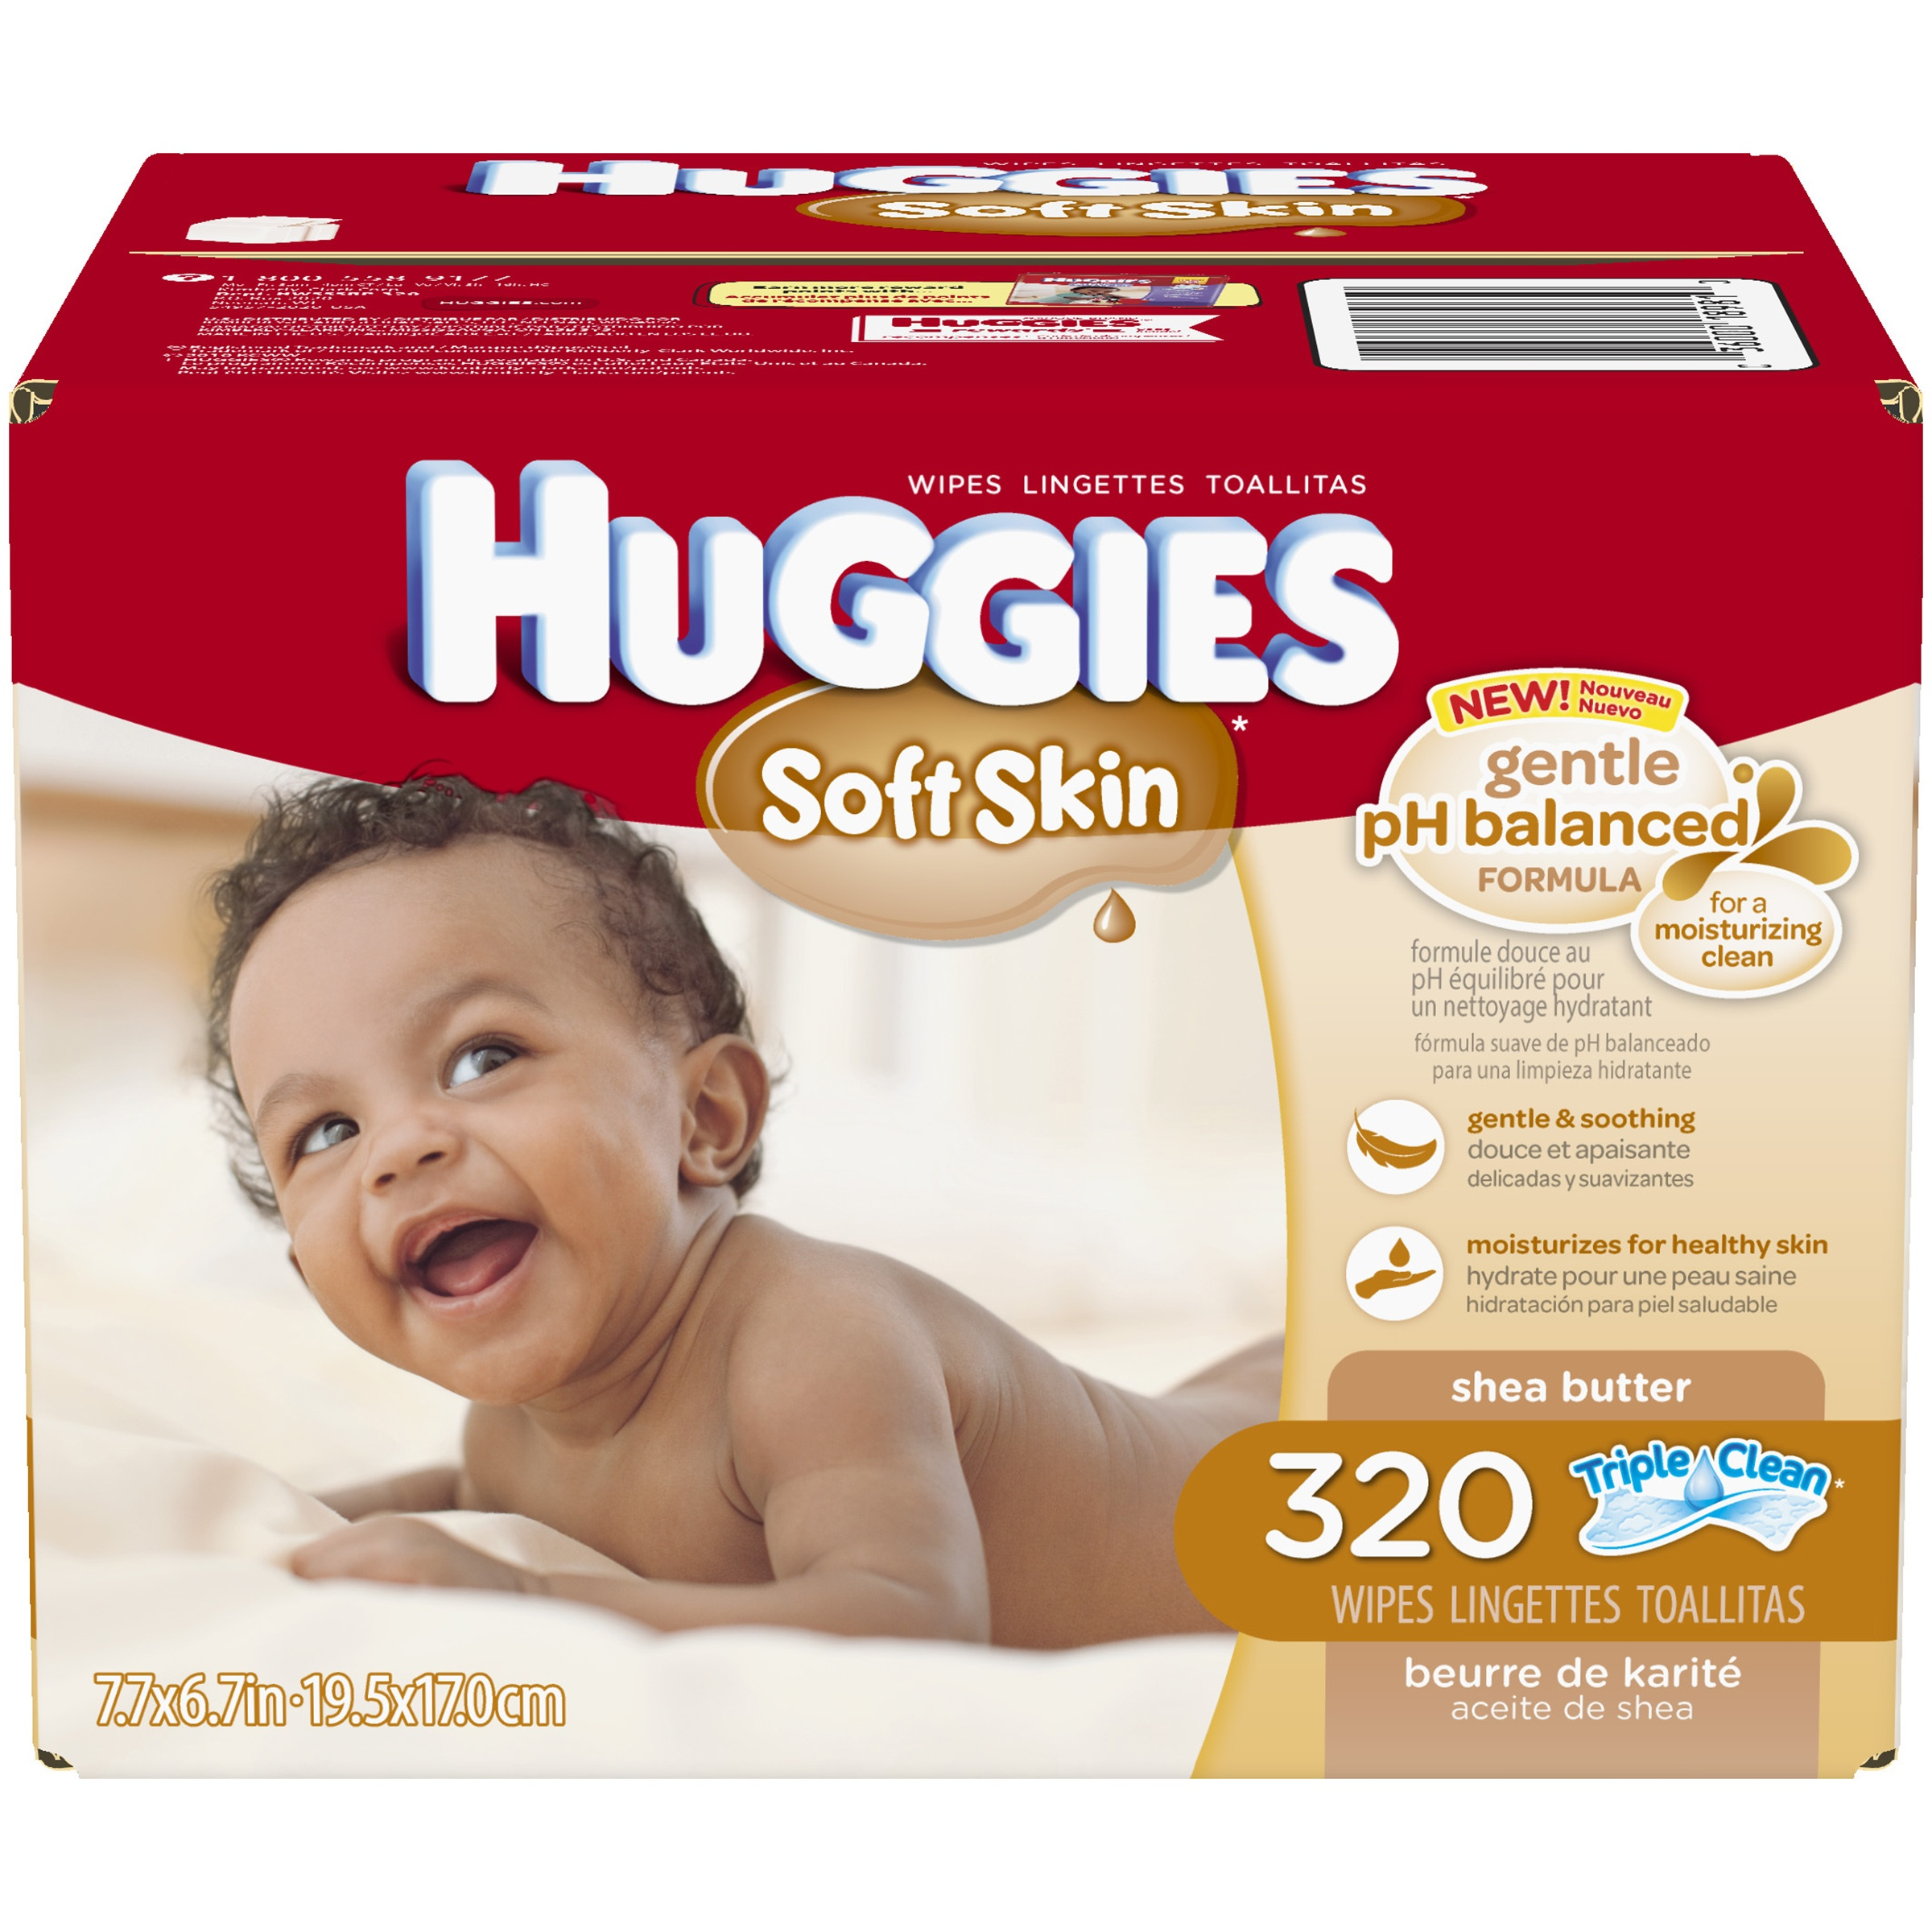 HUGGIES Soft Skin Shea Butter Thick 'n' Clean Wipes, 320 count